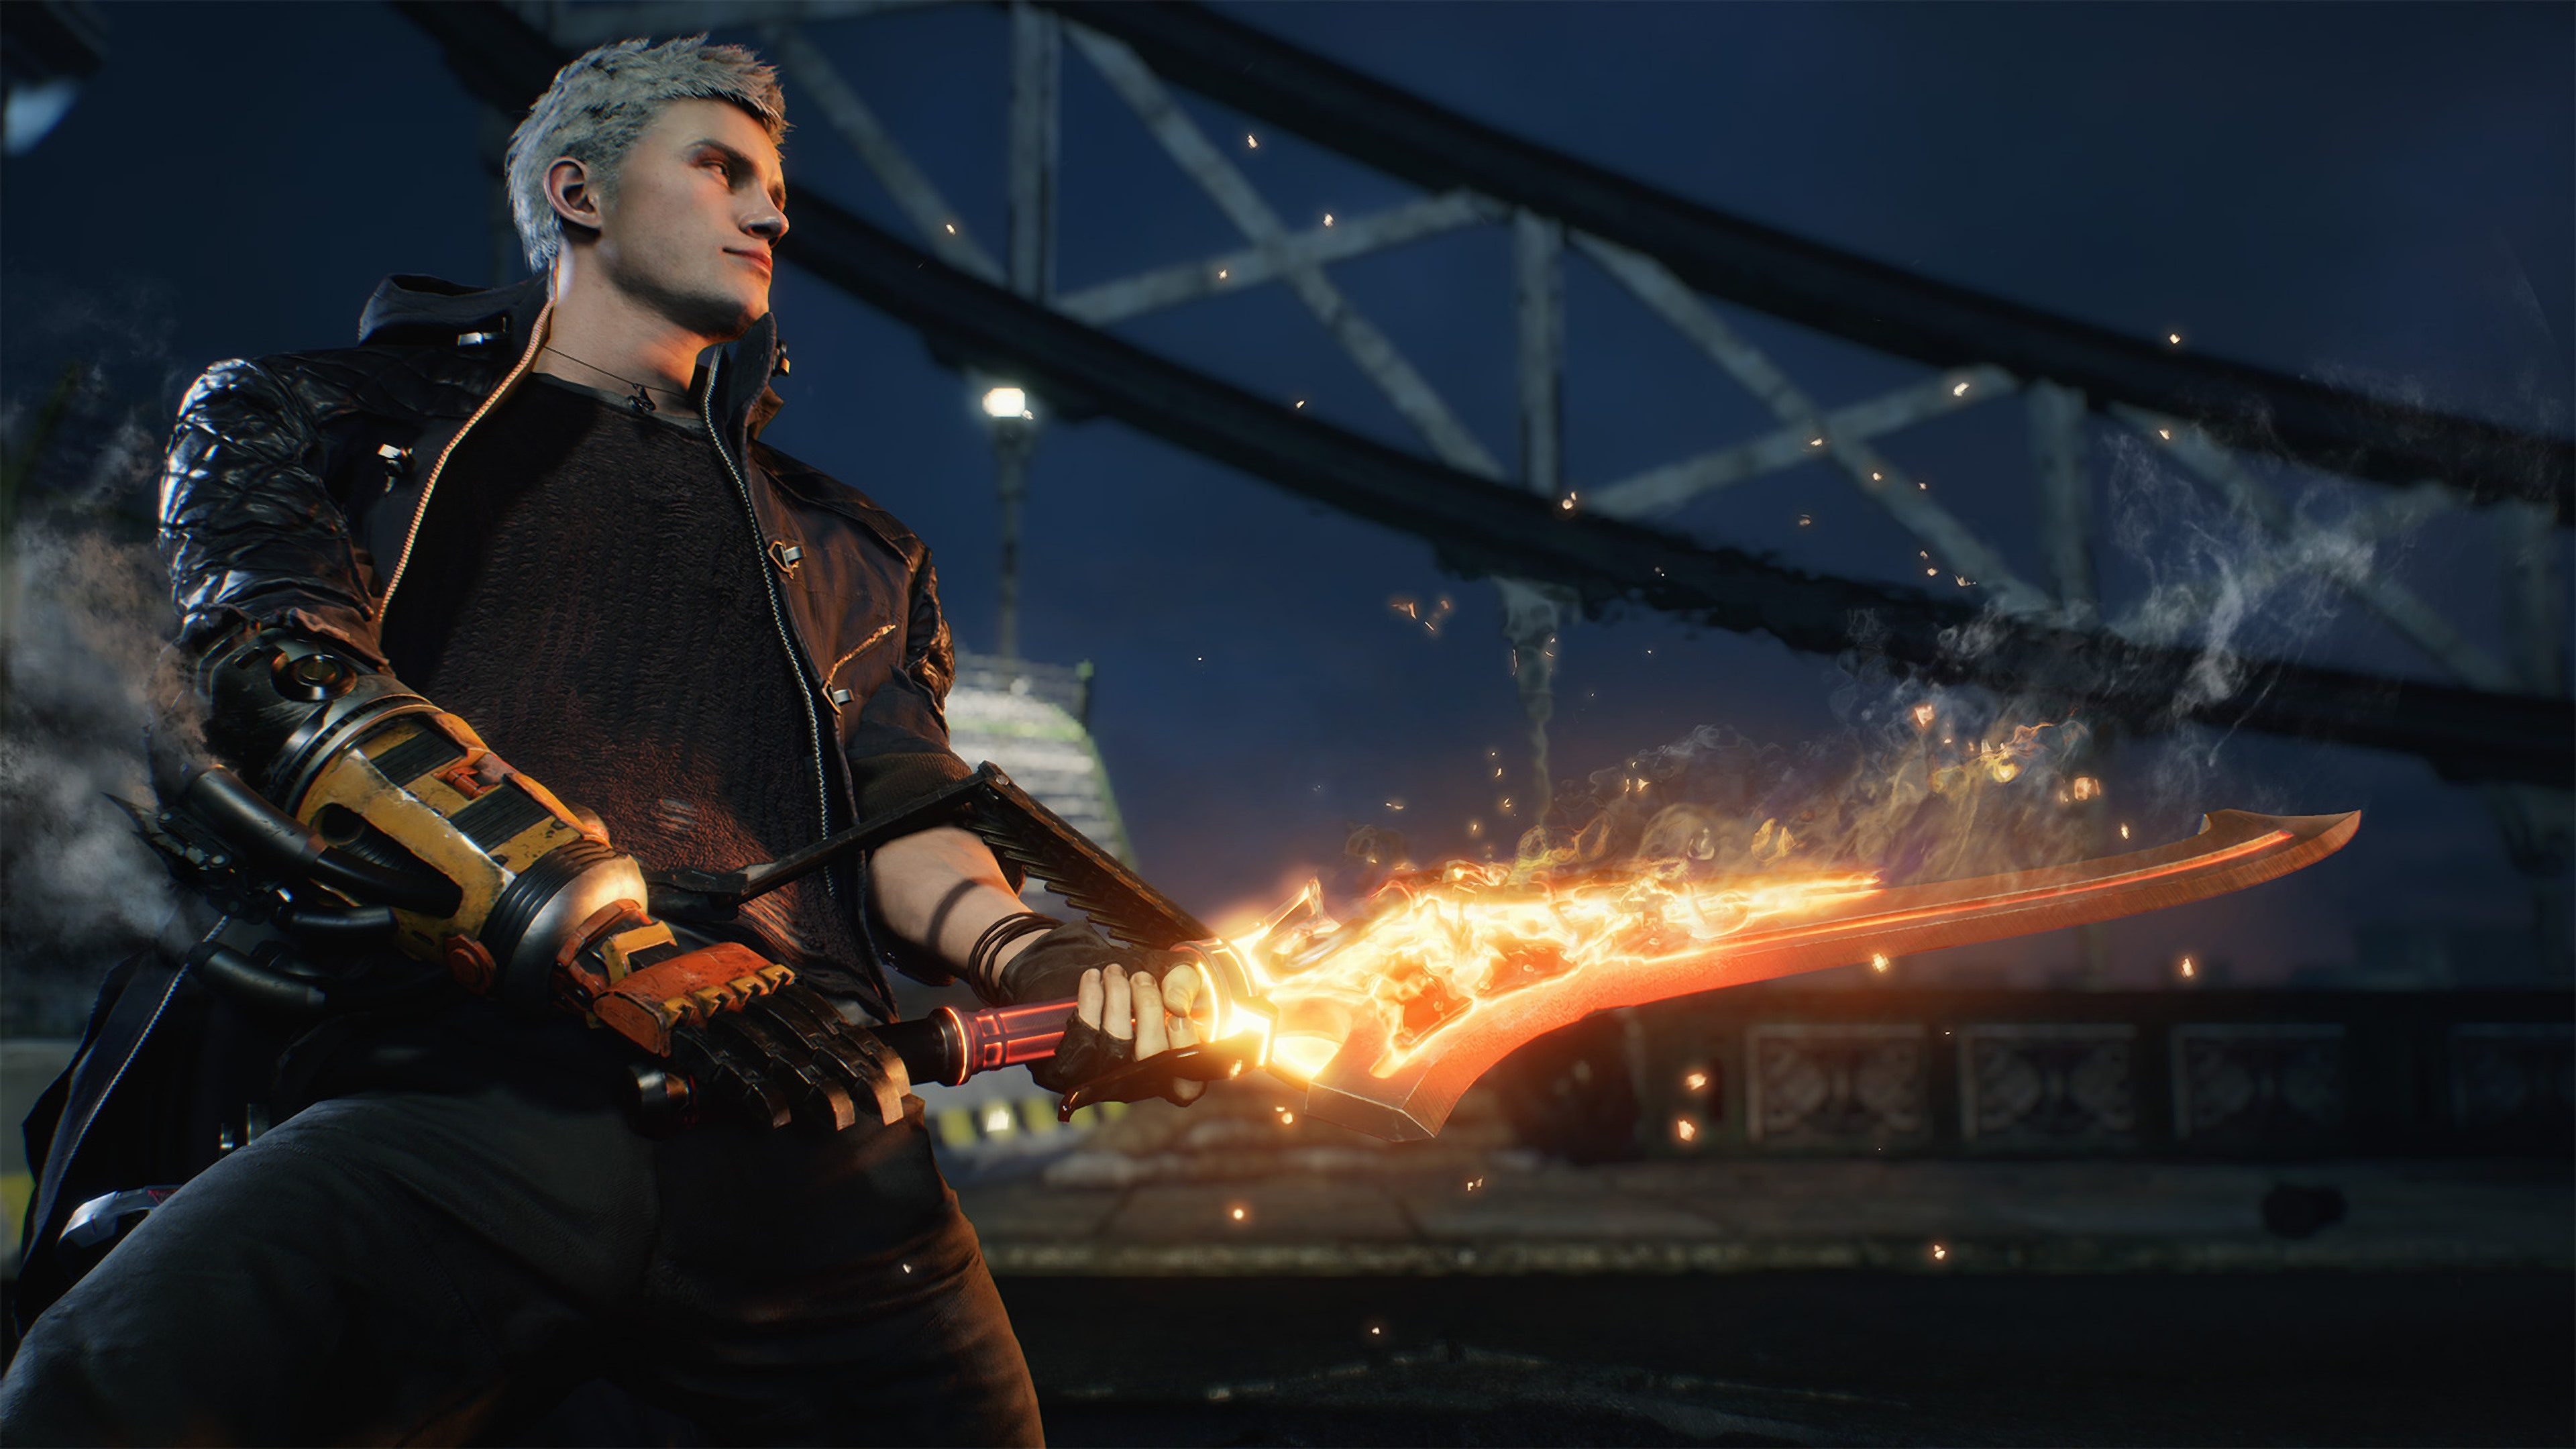 Wallpaper Devil May Cry 5 Sword Magic 3840x2160 Uhd 4k